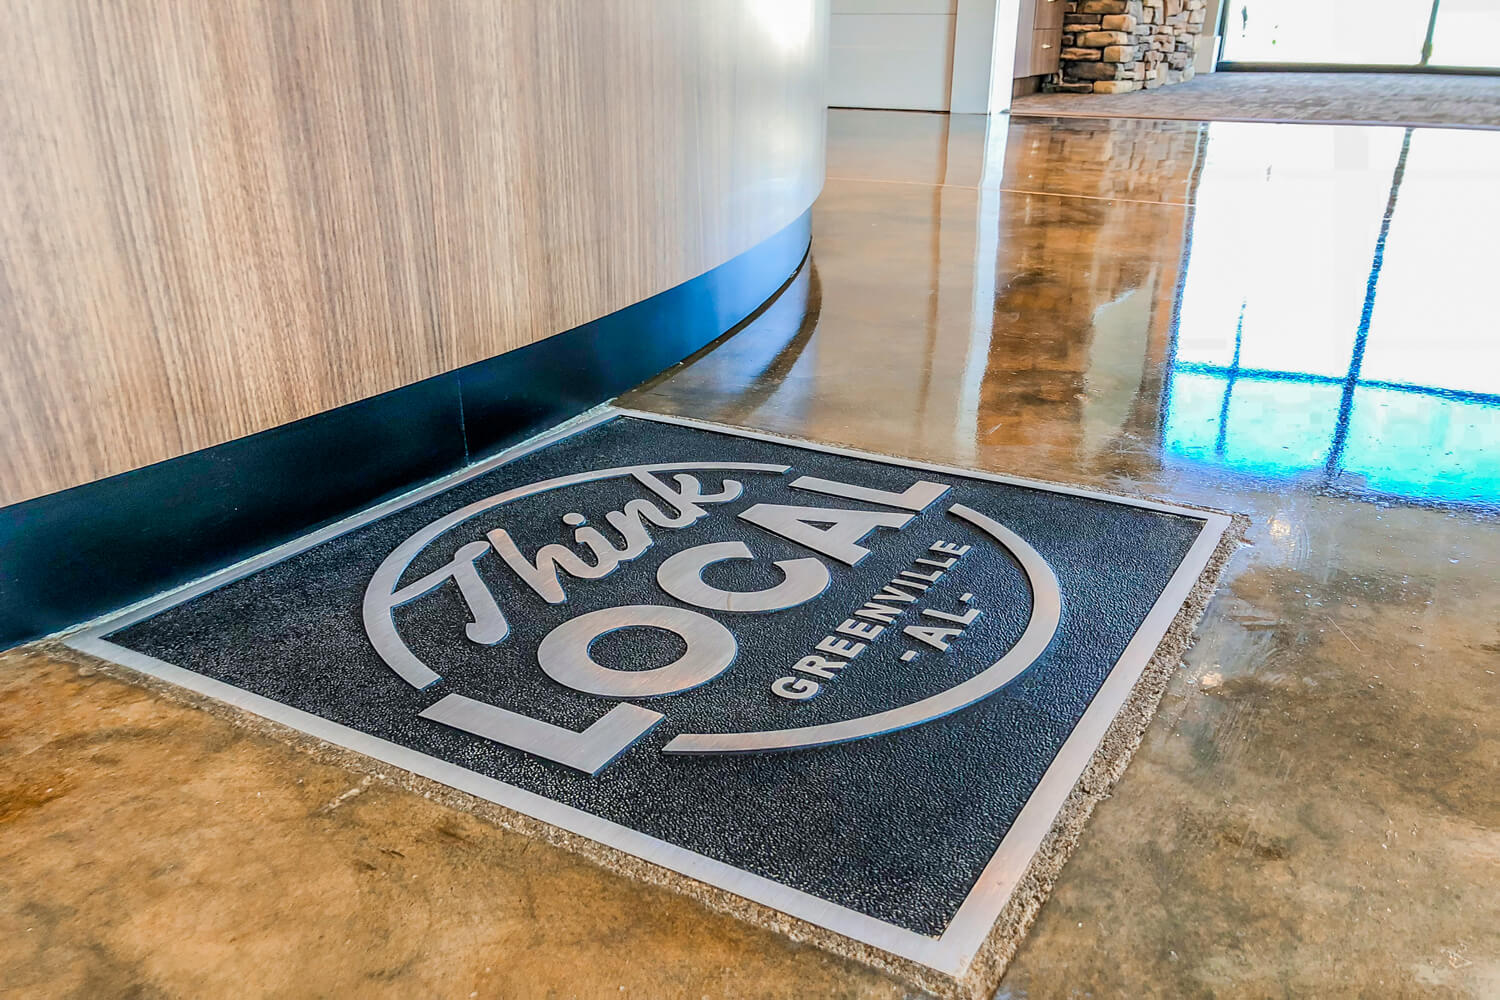 Guardian Credit Union - Floor Plaque - Designed by Foshee Architecture